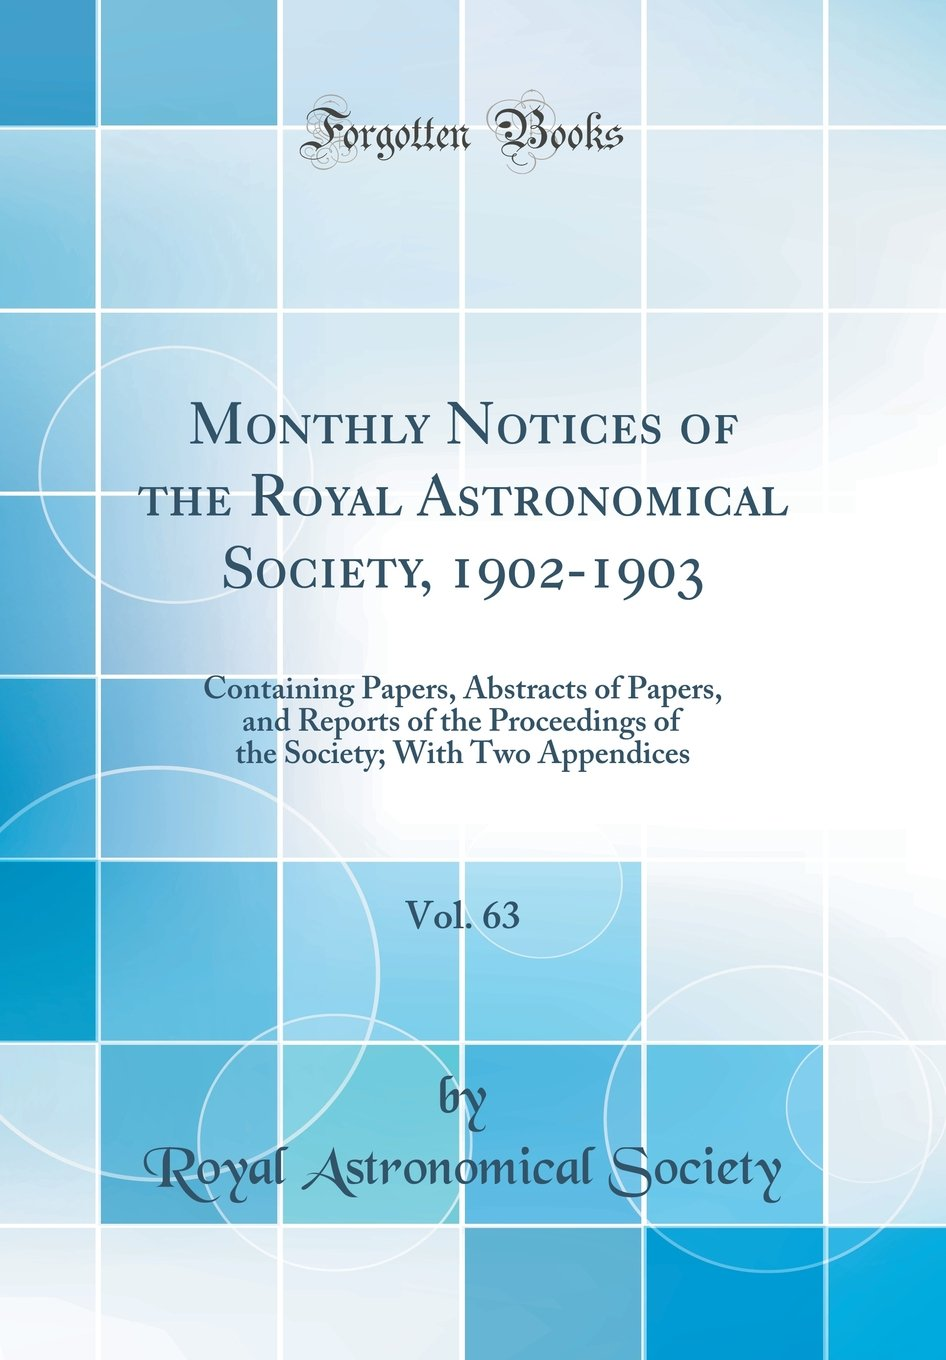 Monthly Notices of the Royal Astronomical Society, 1902-1903, Vol. 63: Containing Papers, Abstracts of Papers, and Reports of the Proceedings of the Society; With Two Appendices (Classic Reprint) ePub fb2 ebook